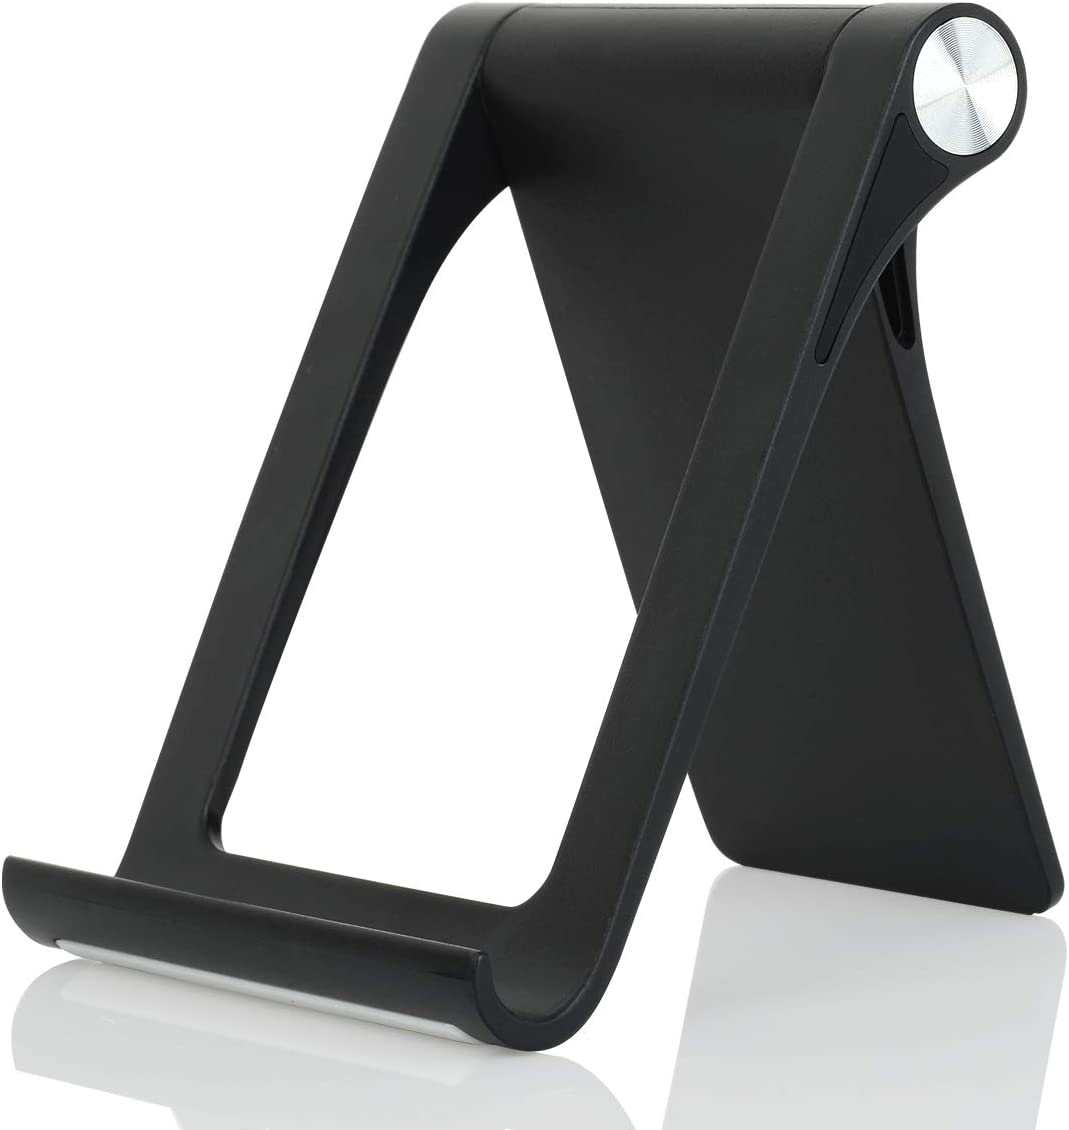 Cell Phone Stand Holder - Uniwit Multi-Angle Adjustable Phone Desk Stand Tablet Holder for iPhone 11 Pro Max XS XR 8 Plus 6 7 Samsung Galaxy S10 S9 S8 S7 Edge S6 Android Smartphone